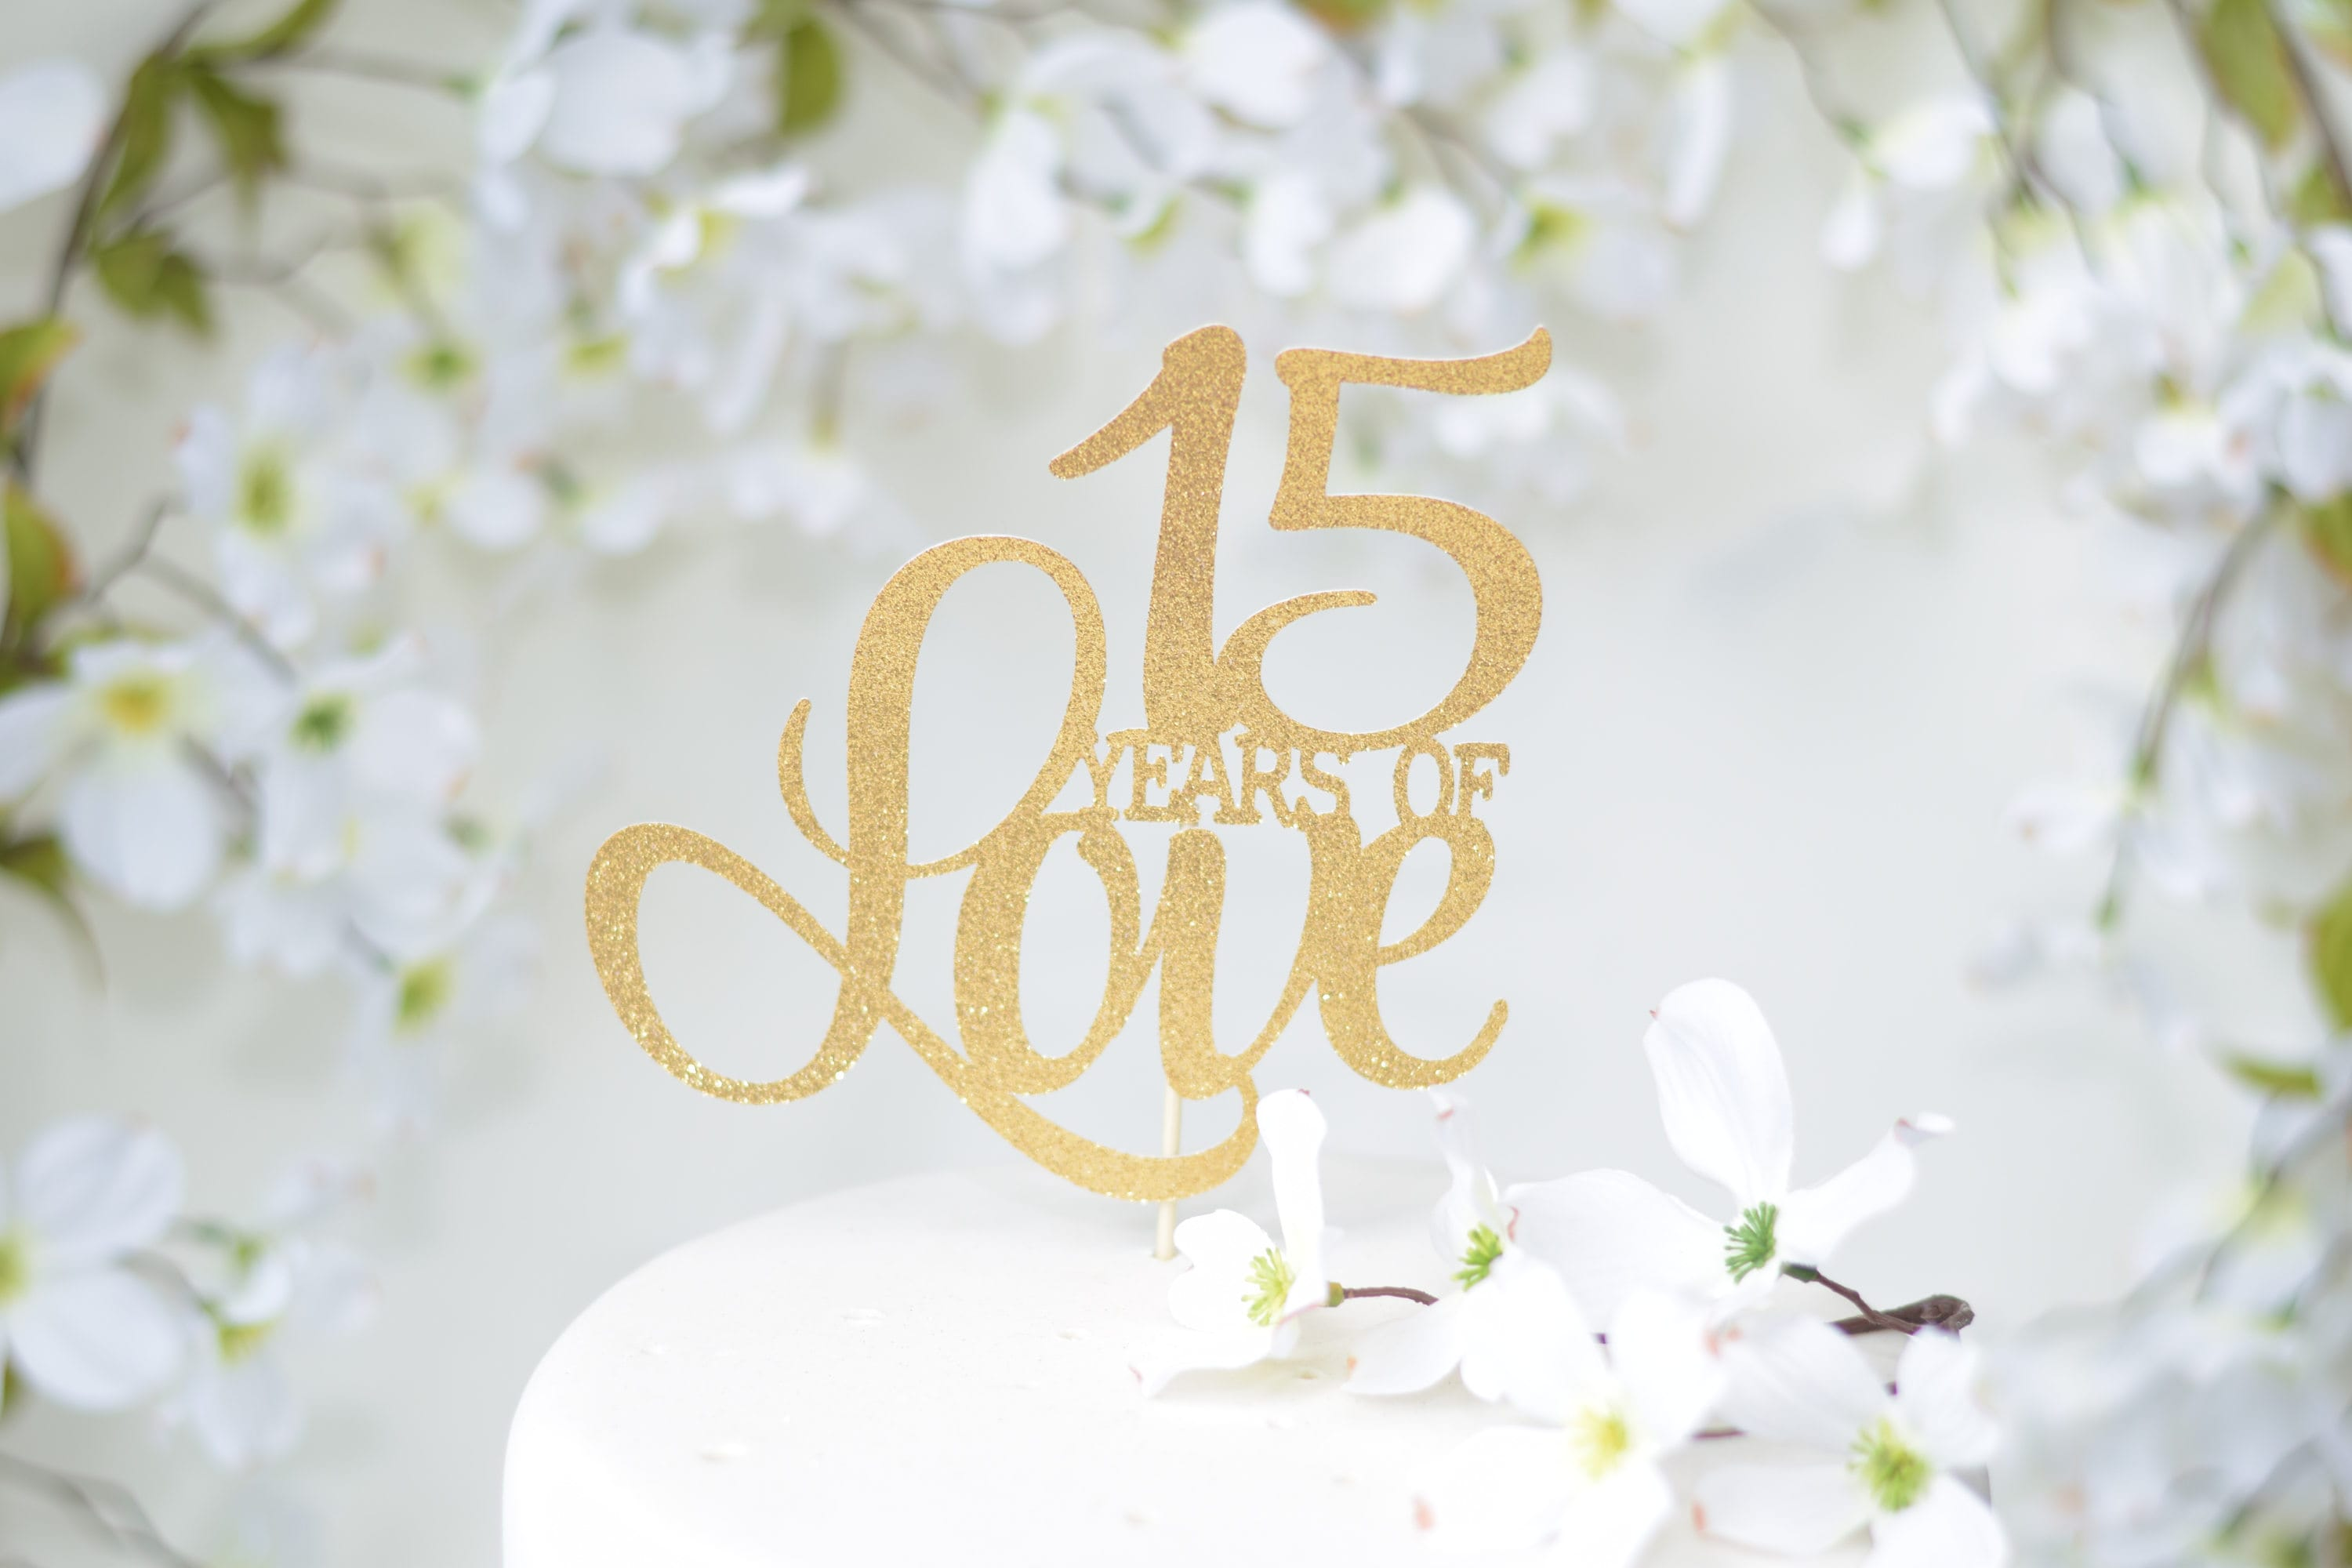 What Is The 15th Wedding Anniversary Gift: 15th Wedding Anniversary Cake Topper 15th Anniversary Vow